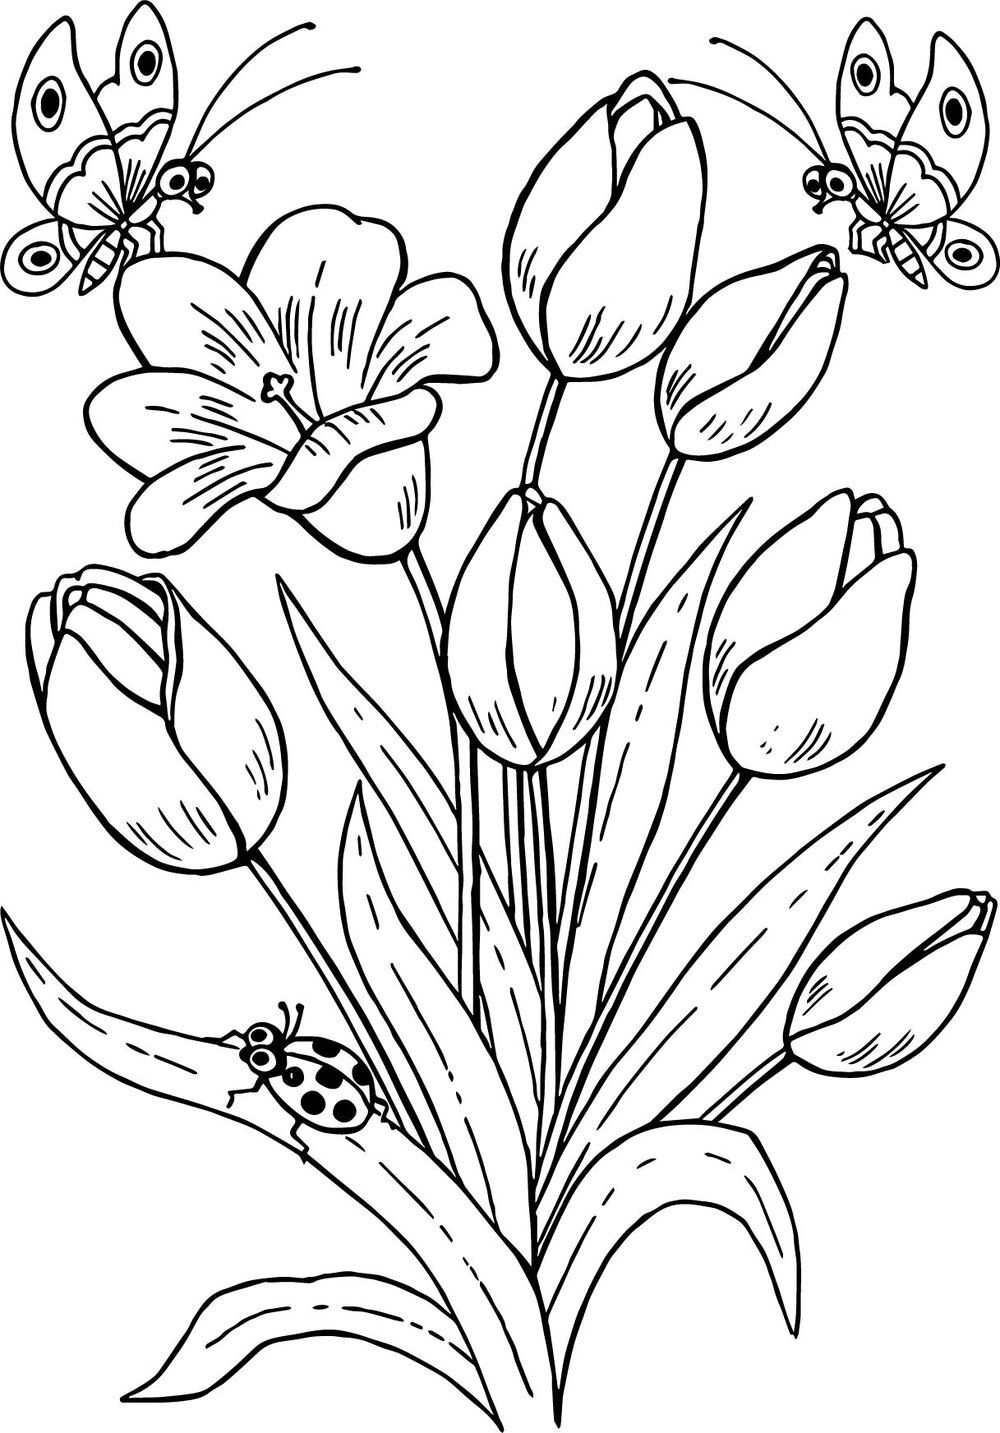 Get Everything You Need Starting At 5 Fiverr In 2021 Printable Flower Coloring Pages Flower Coloring Pages Butterfly Coloring Page [ 1433 x 1000 Pixel ]